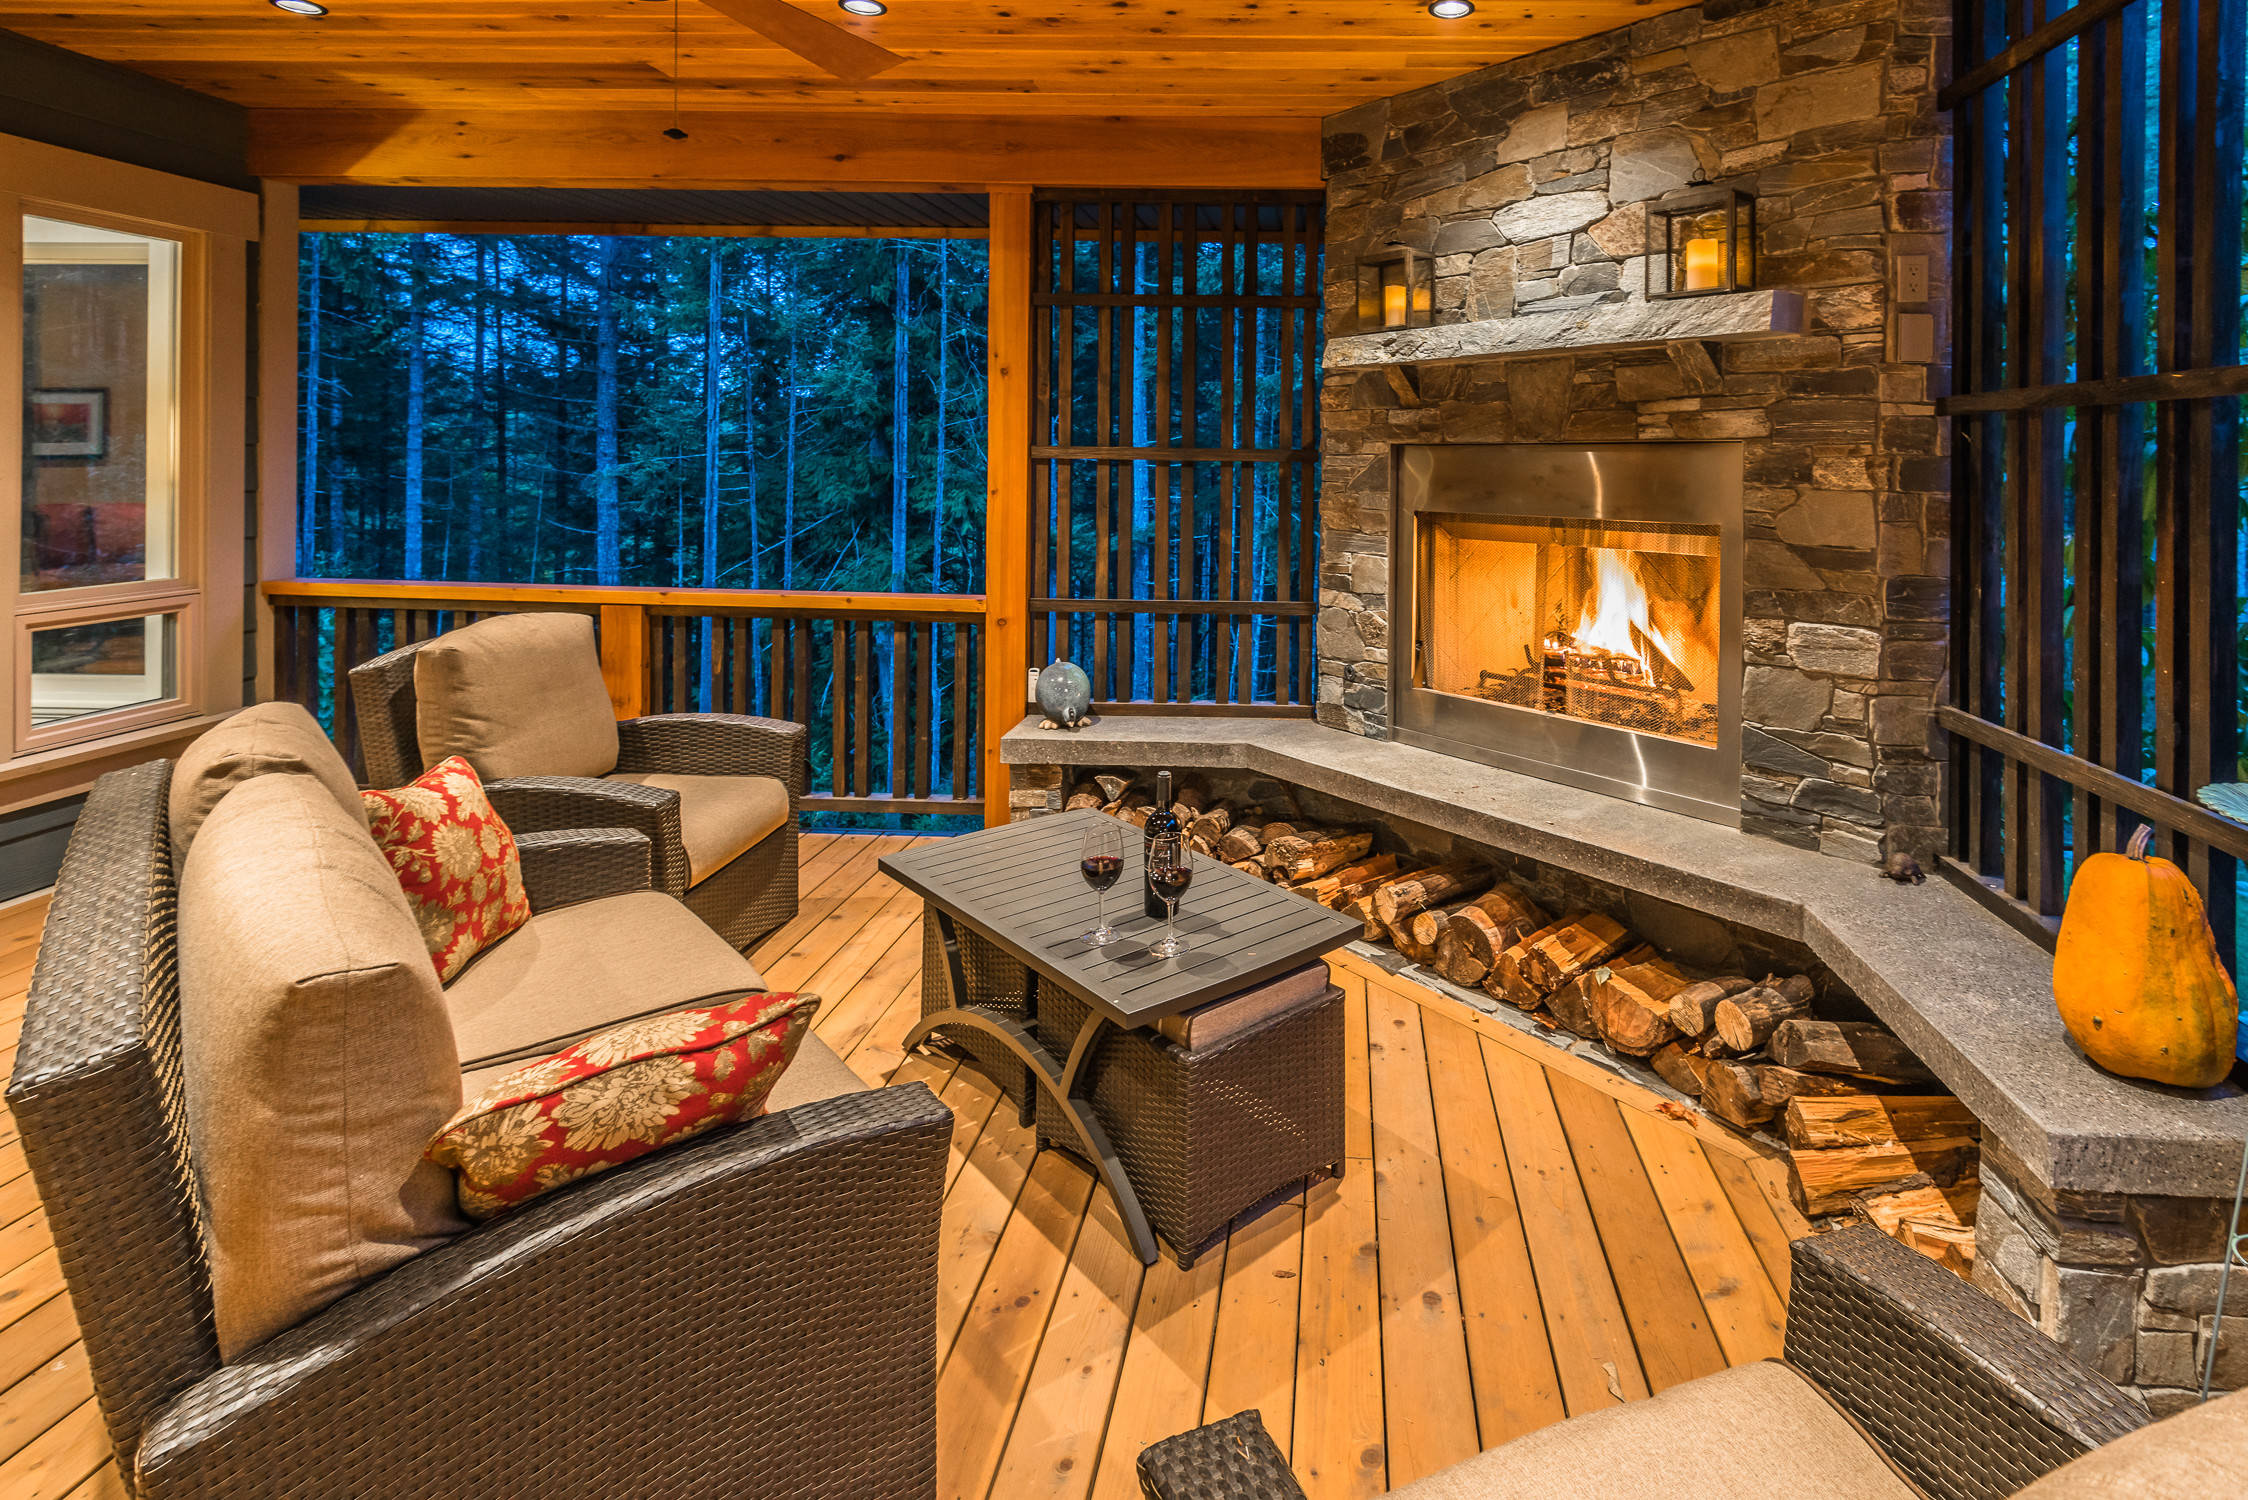 15 Amazing Rustic Deck Designs That Will Enhance Your ... on Living Room Deck id=28606